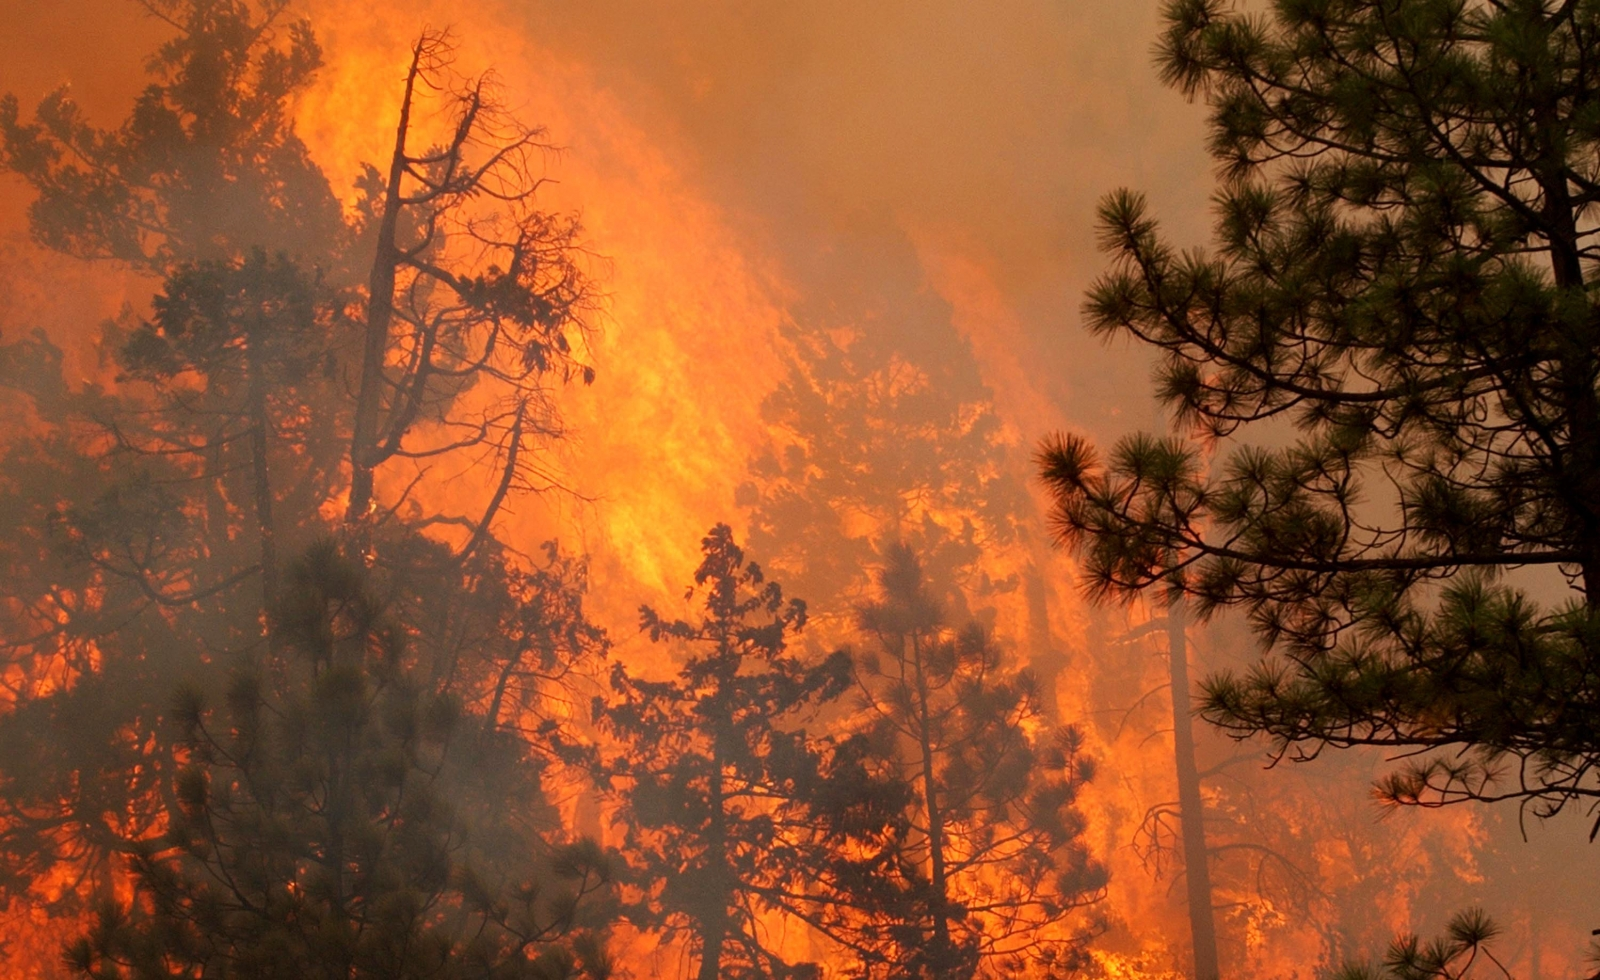 Wildfire rages in Oregon. (Getty)